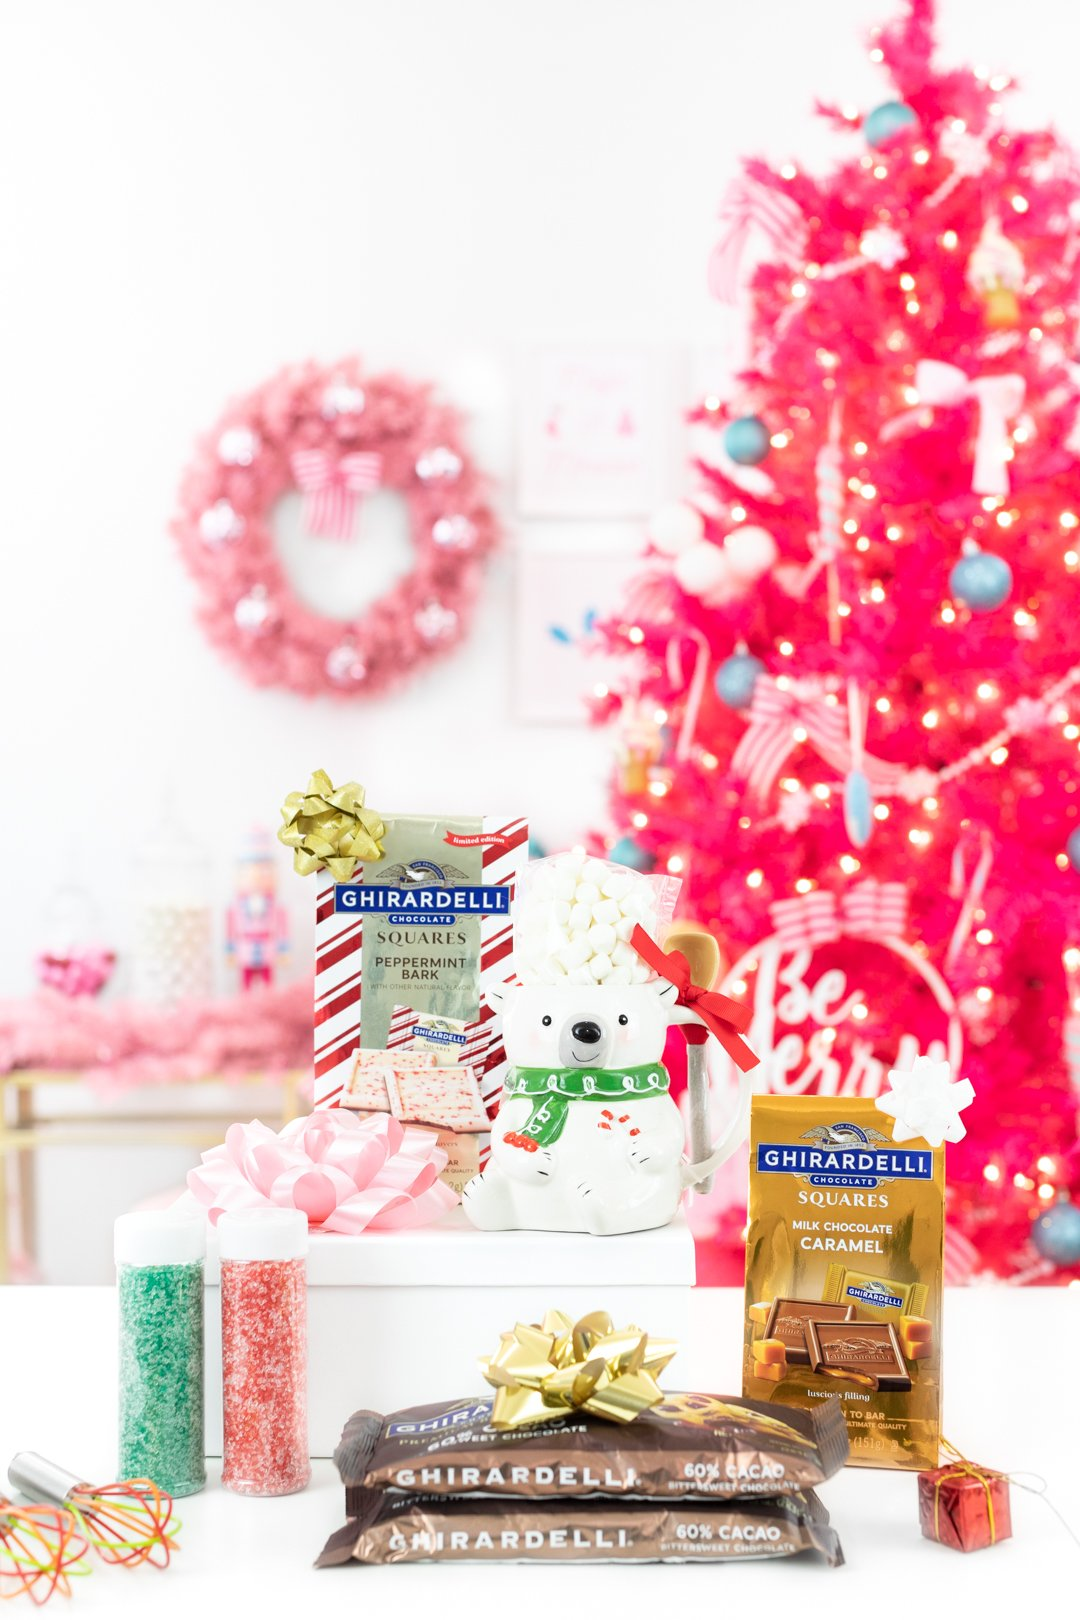 Ghirardelli products for the holidays.